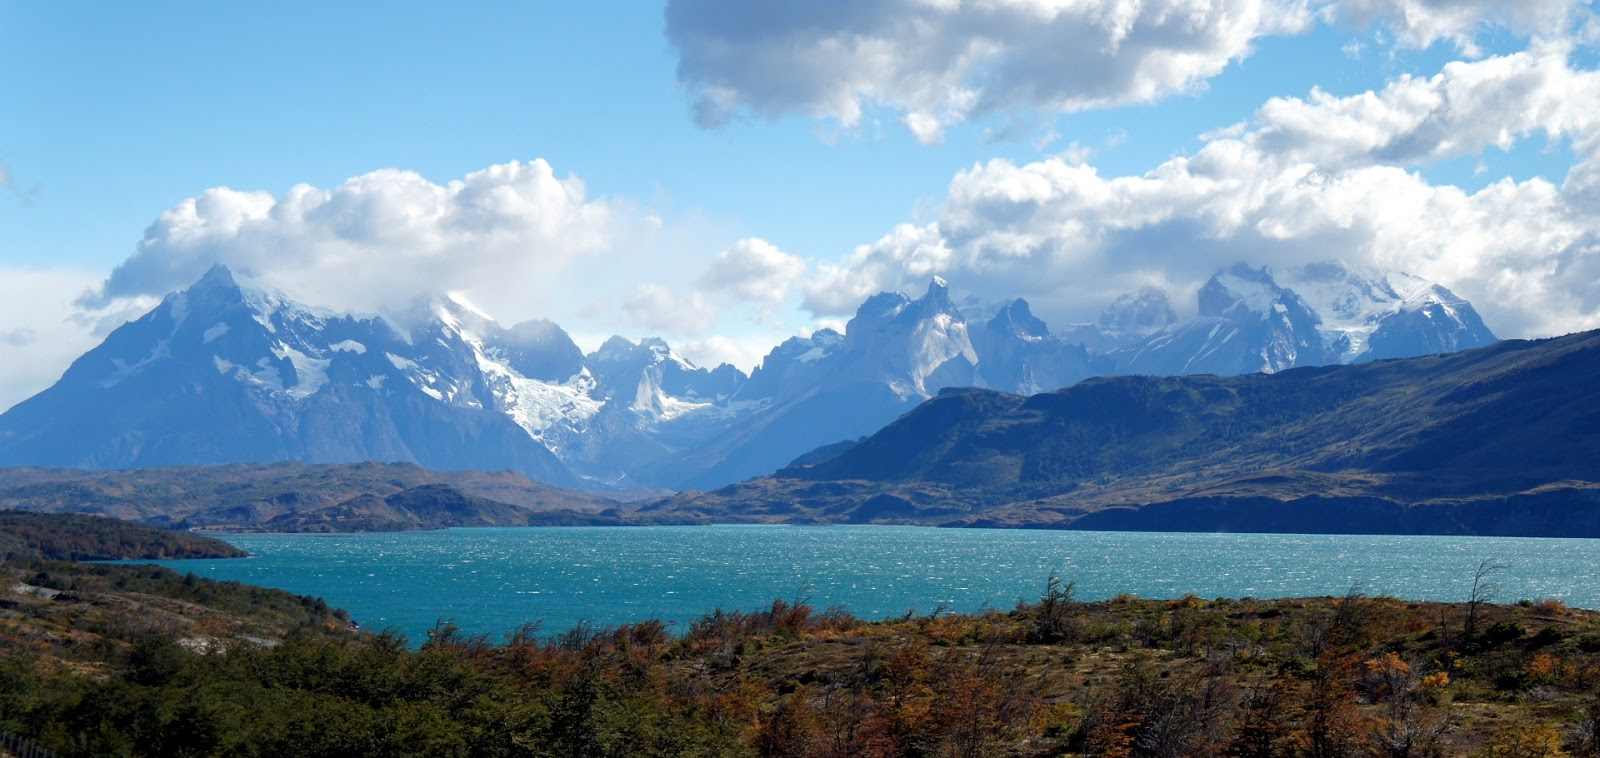 After experiencing the emotional and physical highs of Los Glaciares National Park, we continued to the most famous of Patagonia's attractions, Torres del Paine National Park. This park contains some of the most scenic and photogenic mountains, spires,...